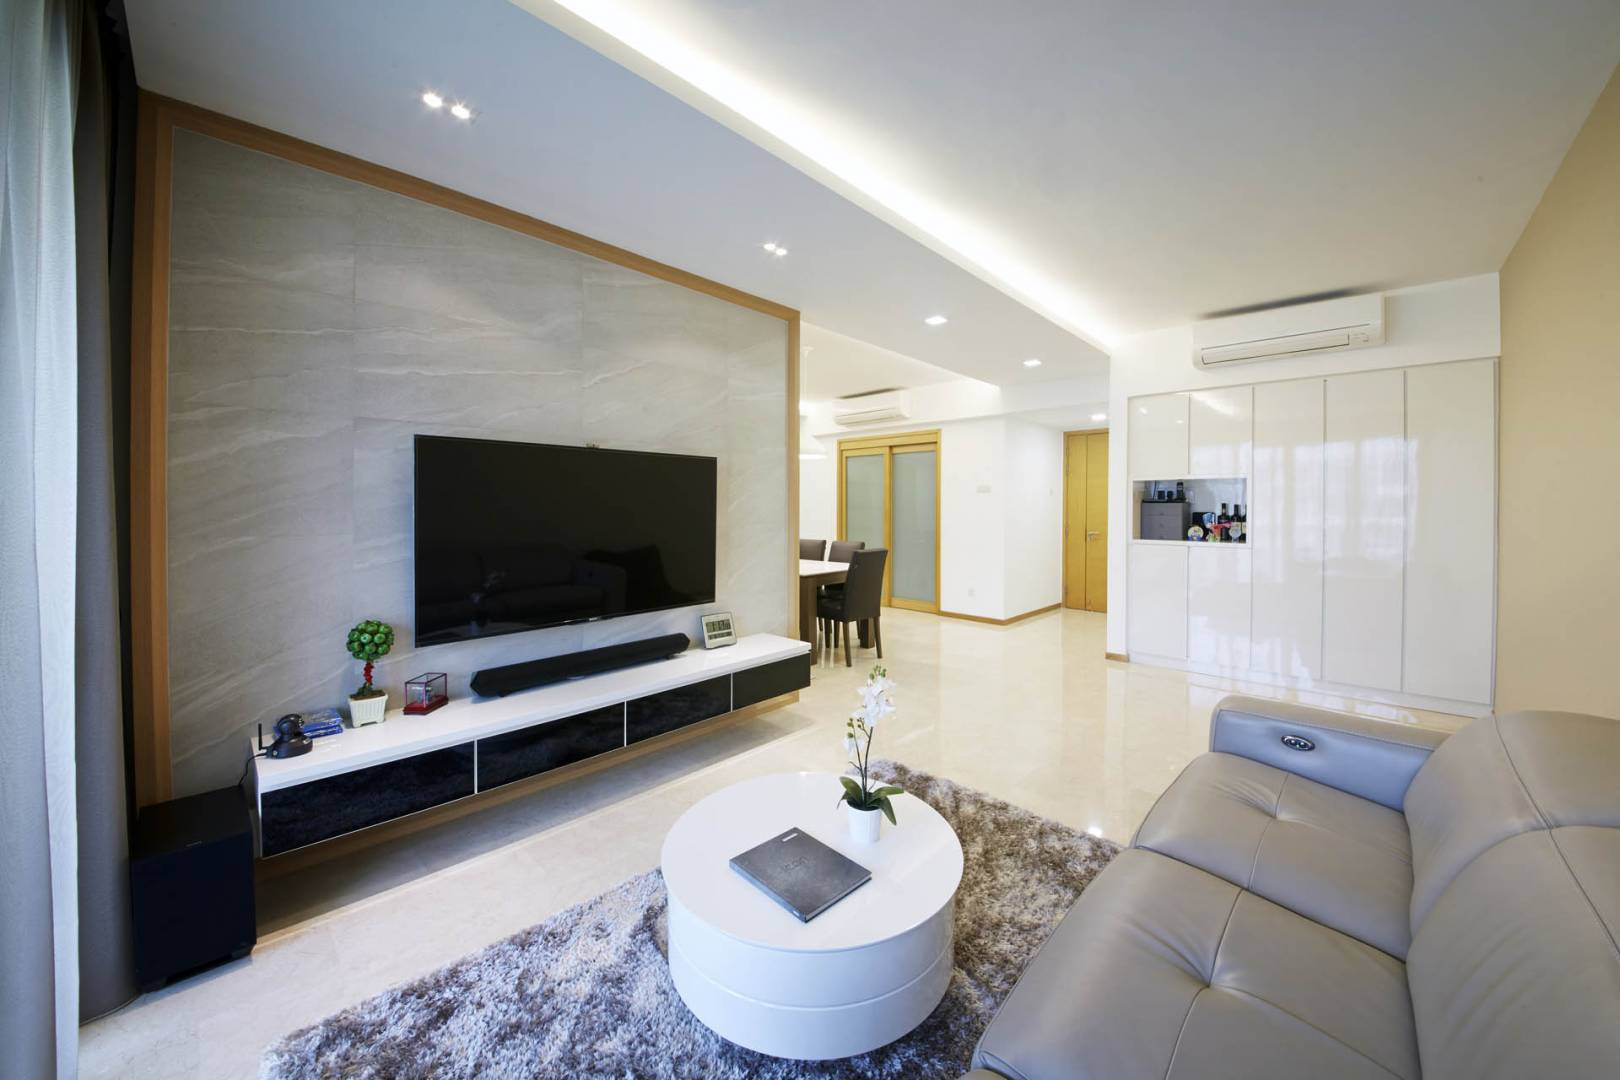 1 Edelweiss Park Condo By Carpenters